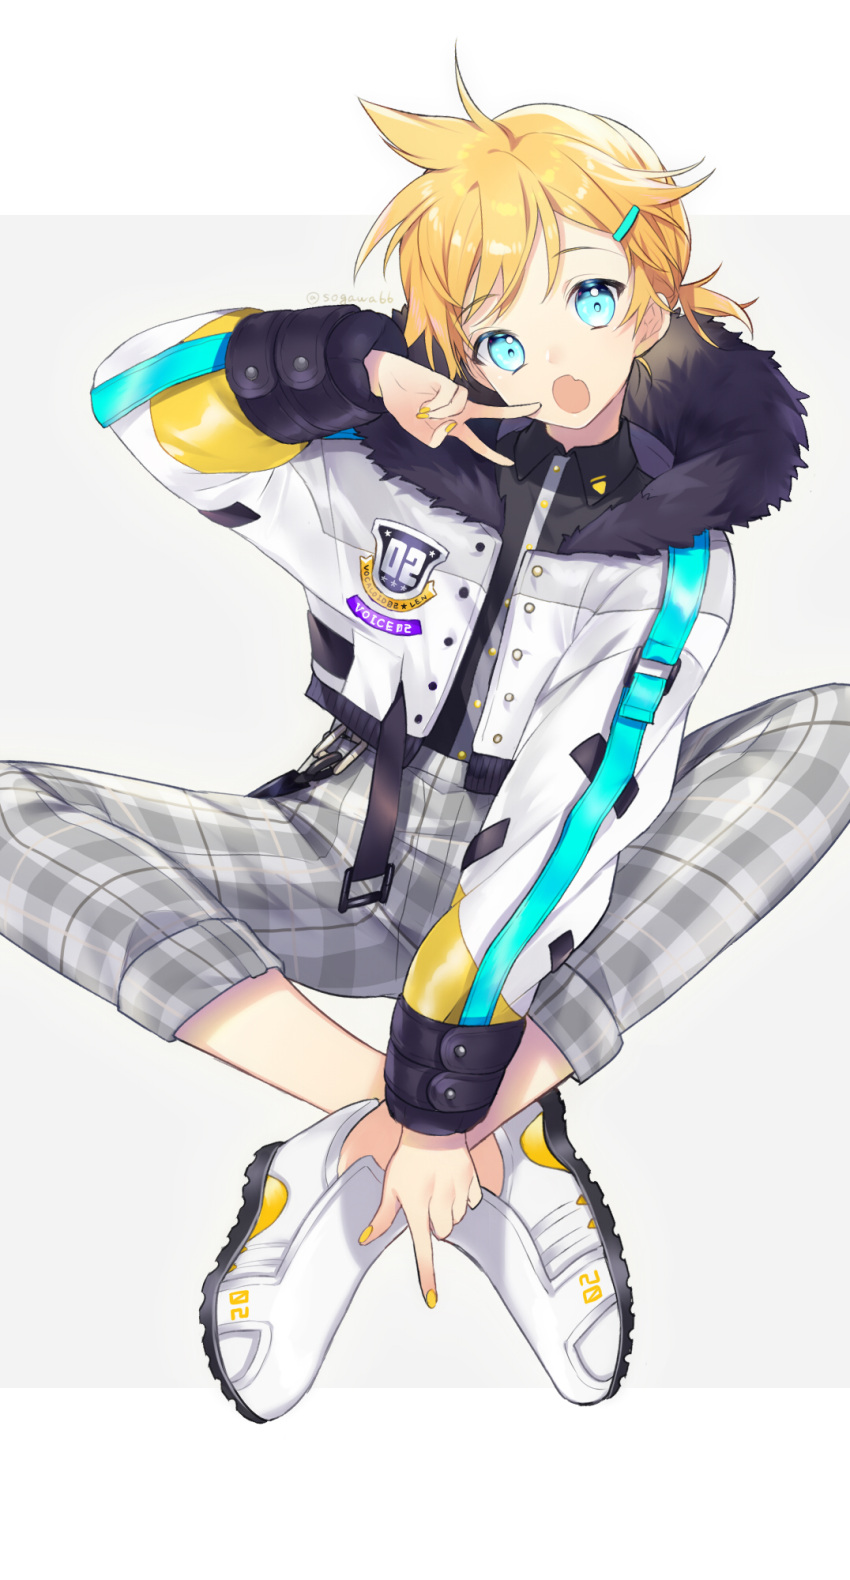 1boy :o bangs black_shirt blonde_hair blue_eyes character_name collared_shirt copyright_name crossed_ankles dress_shirt eyebrows_visible_through_hair fang fingernails fur-trimmed_jacket fur_trim grey_background grey_pants hair_ornament hairclip head_tilt highres jacket kagamine_len long_sleeves looking_at_viewer male_focus open_clothes open_jacket open_mouth pants plaid plaid_pants puffy_long_sleeves puffy_sleeves shirt shoes sitting sogawa solo twitter_username two-tone_background v vocaloid white_background white_footwear white_jacket yellow_nails